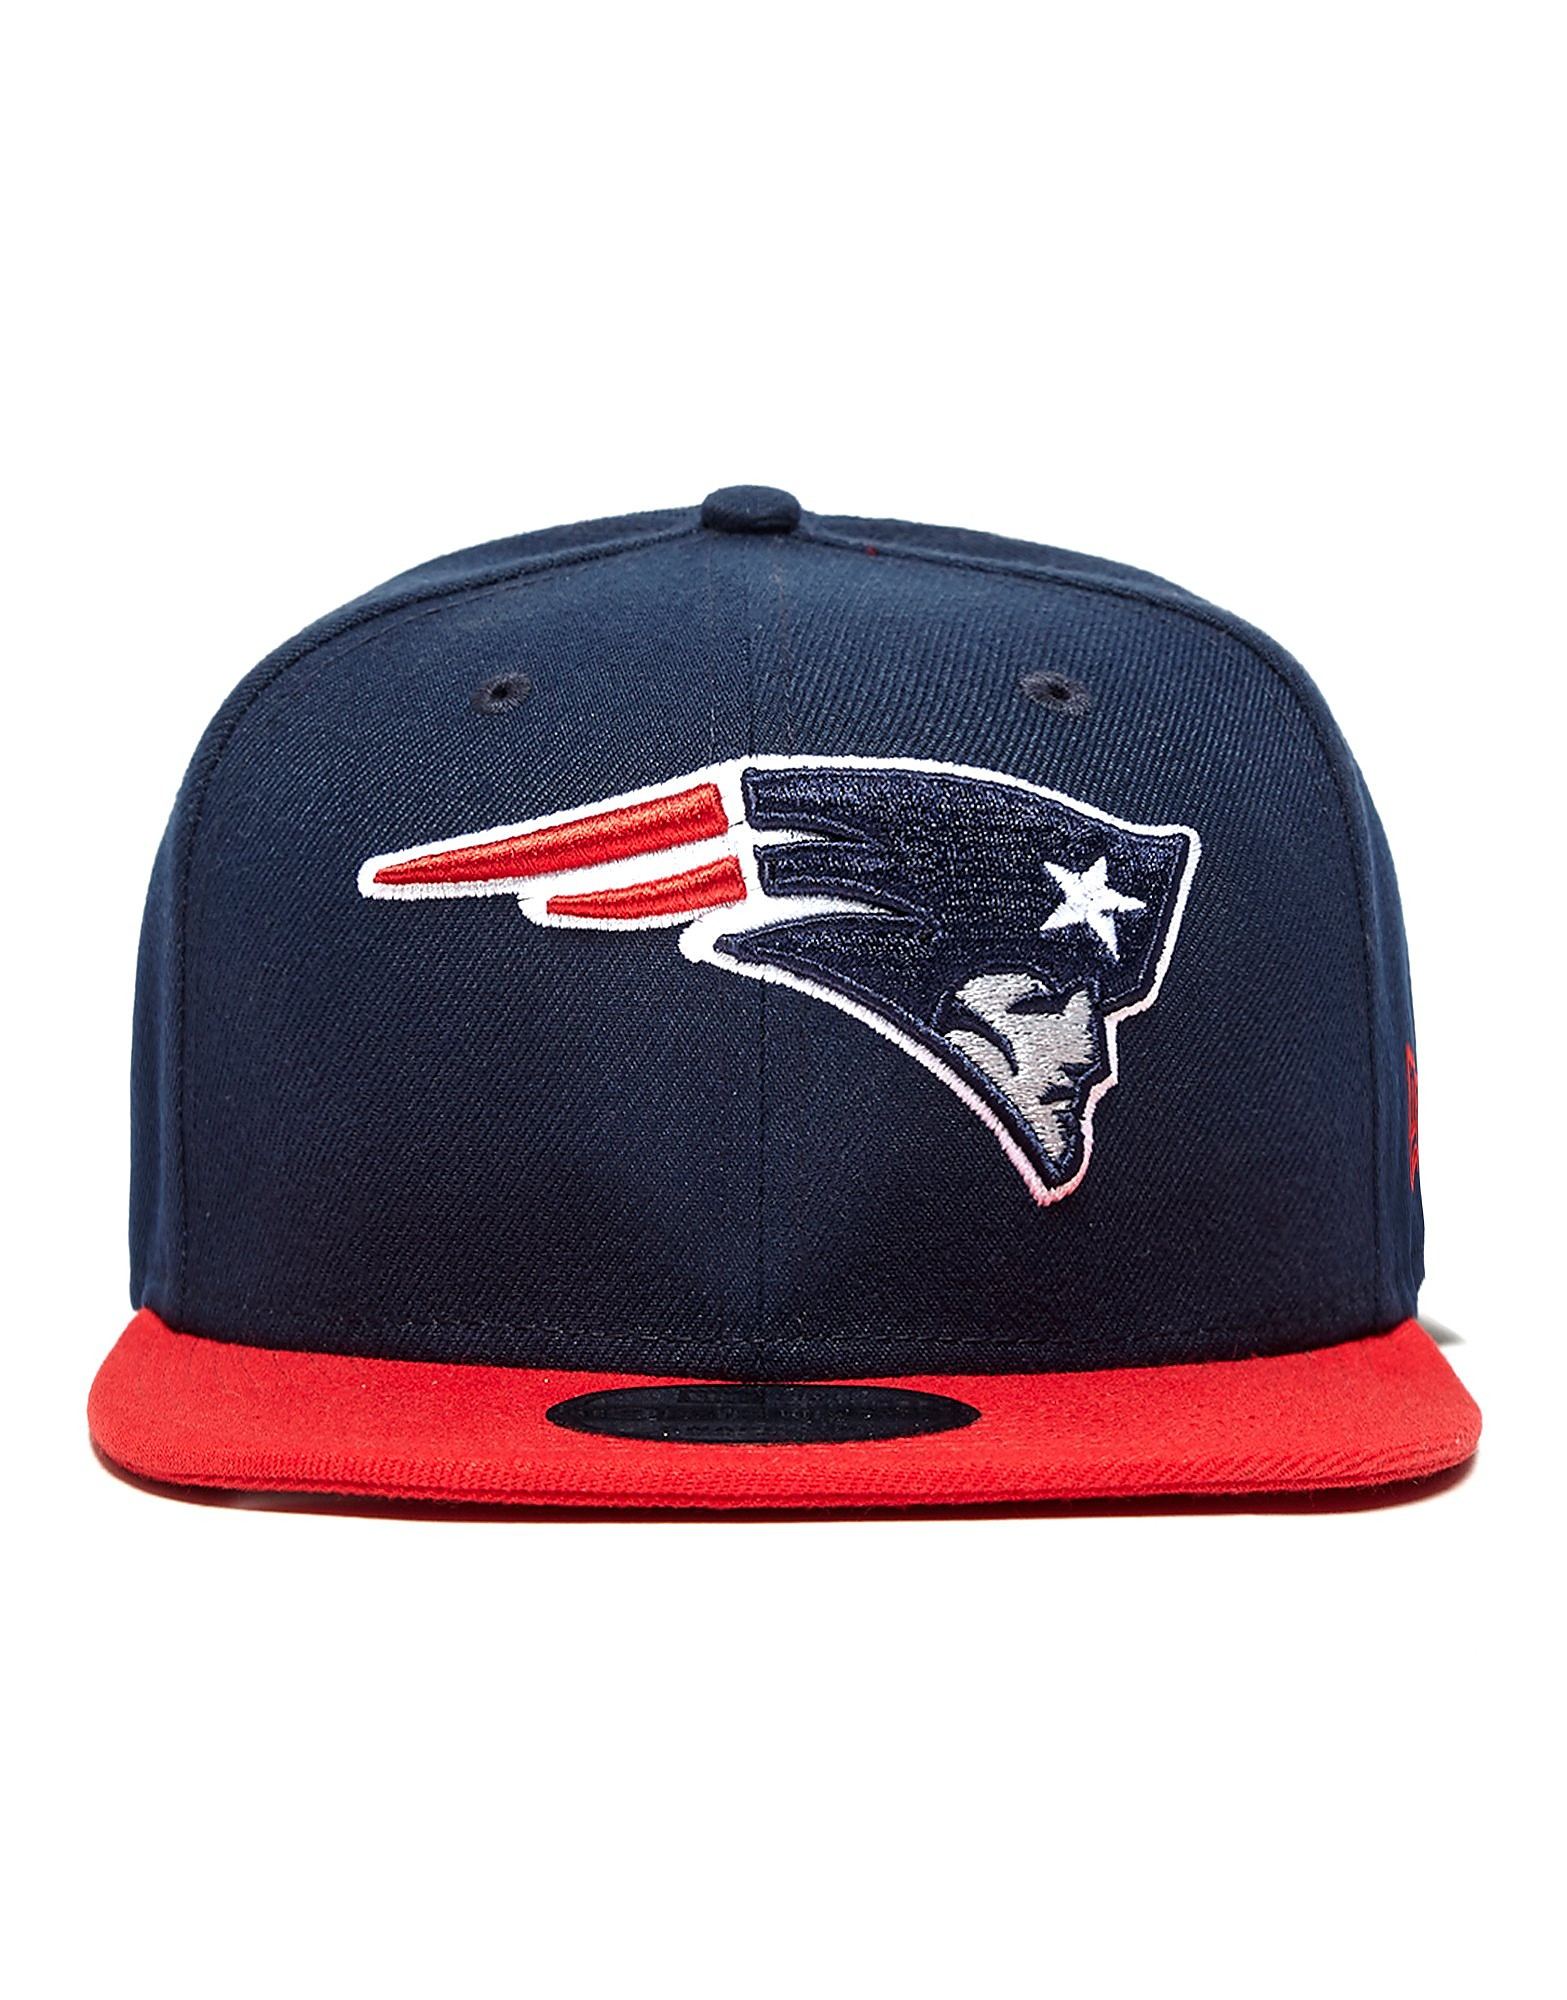 New Era Patriots Team Classic 9fifty Cap